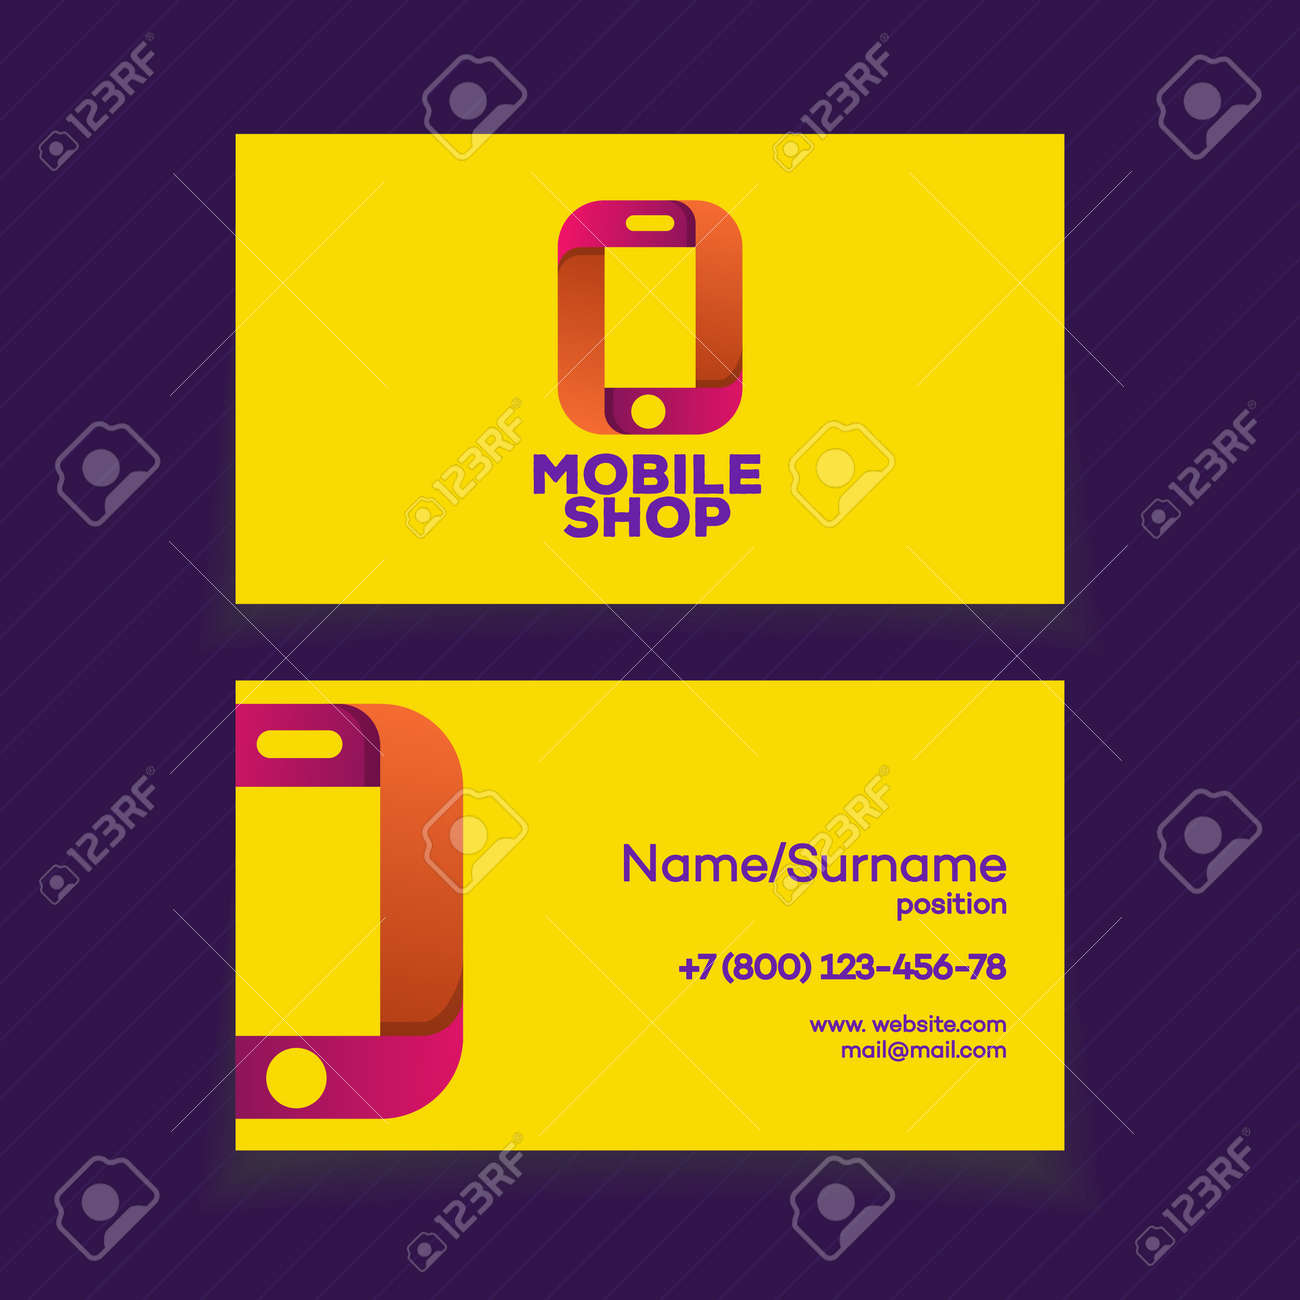 Modle De Conception De Carte De Visite De Magasin Mobile Avec Logo